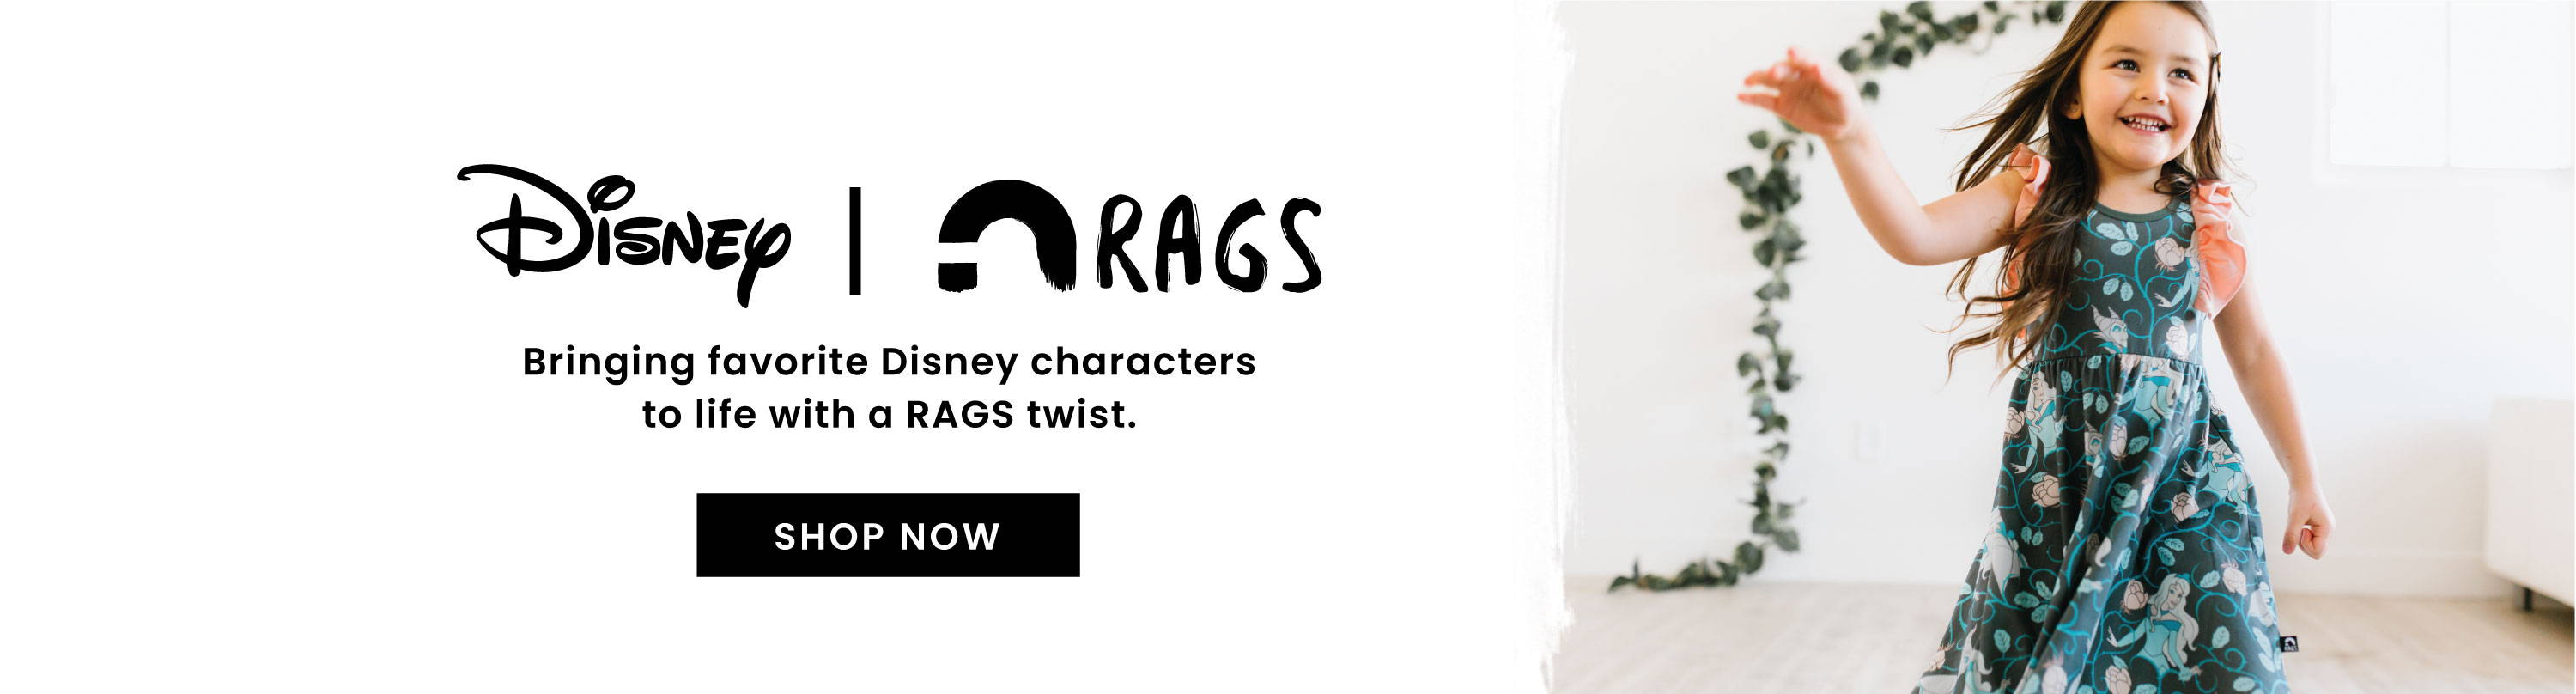 Disney and RAGS Collaboration